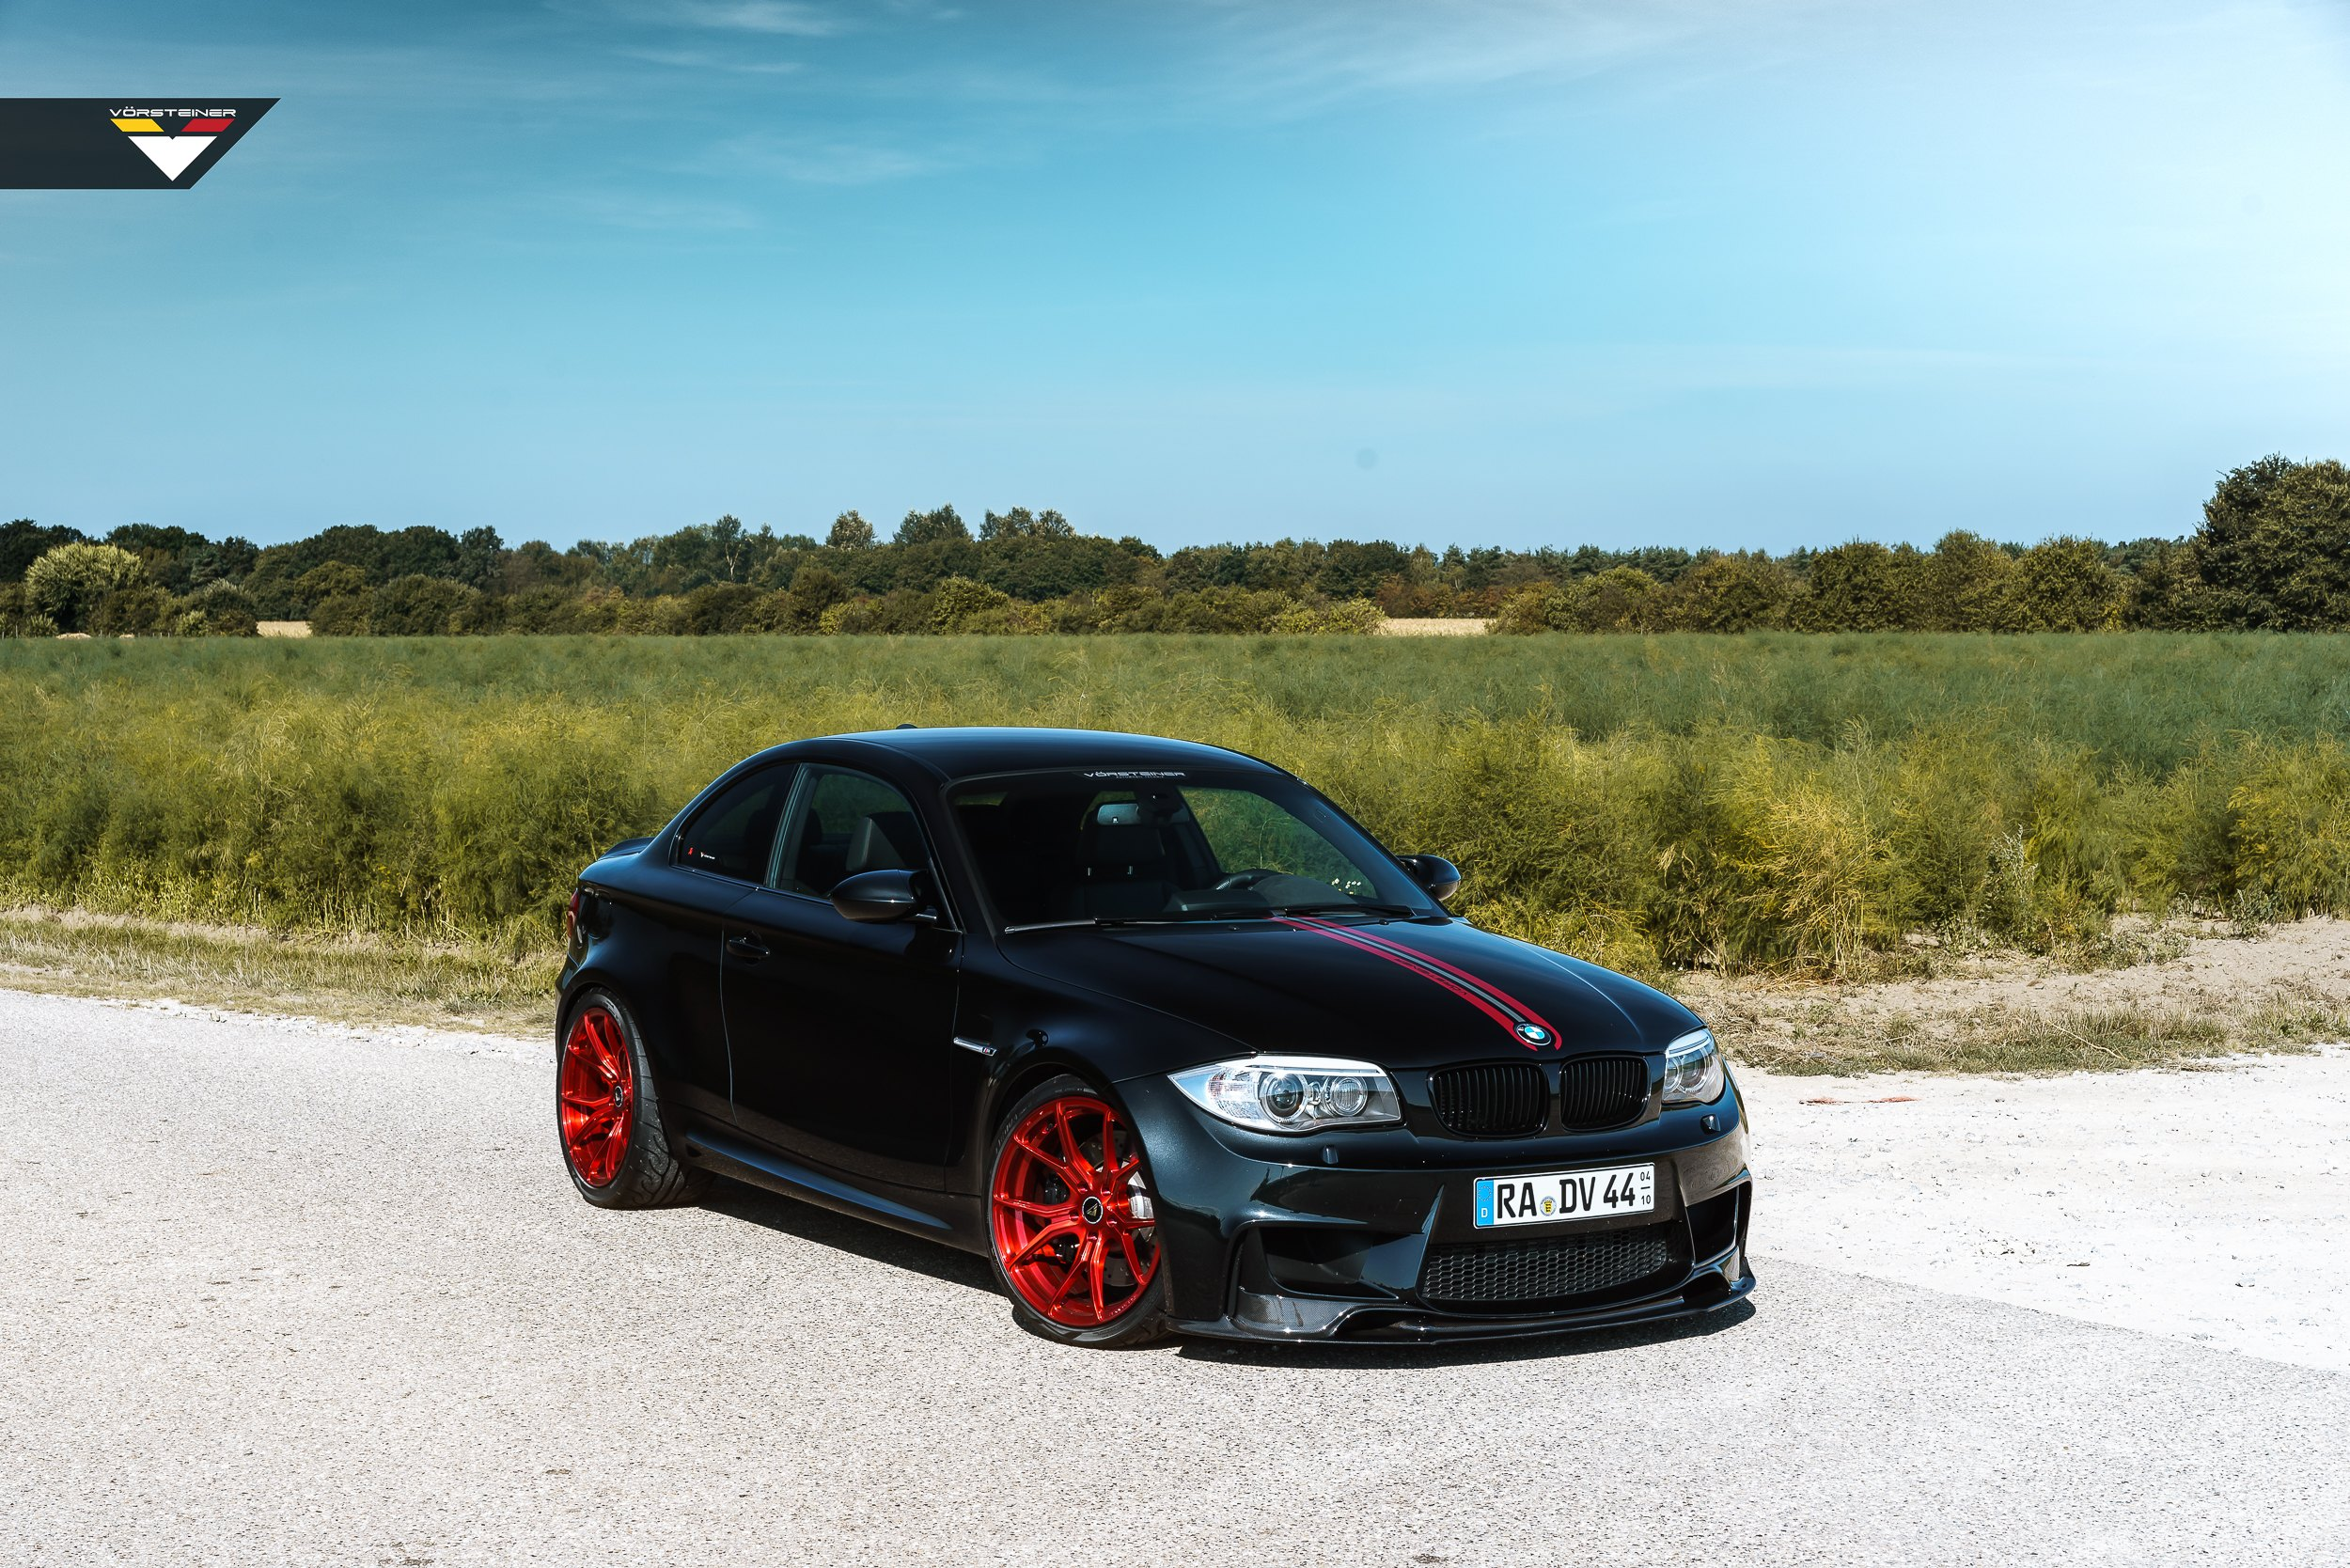 Custom Black Matte Bmw 1 Series Grabs Attention With Red Custom Wheels Carid Com Gallery